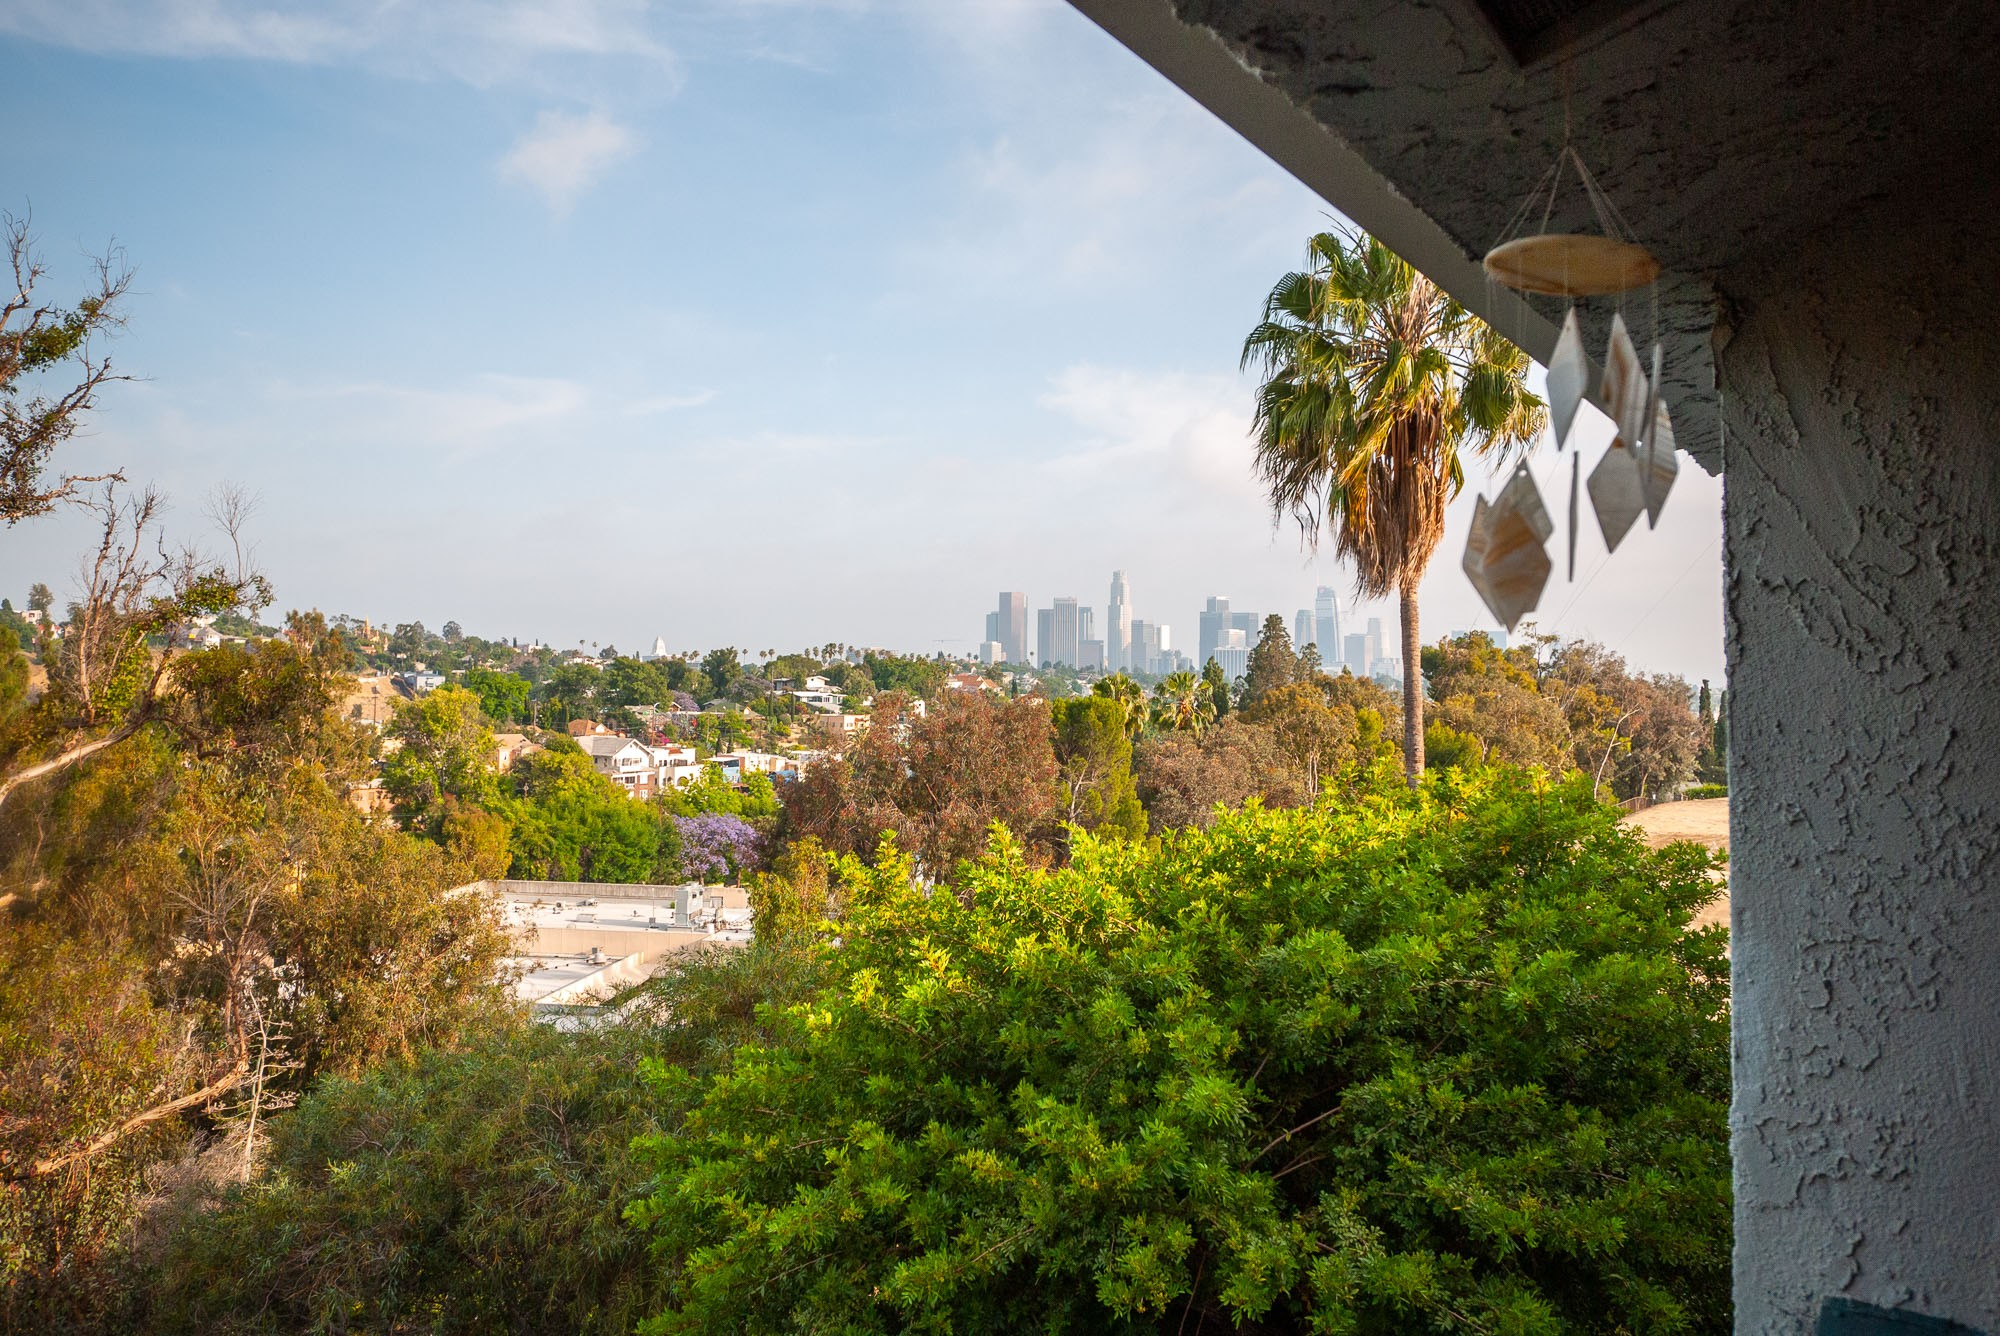 Upper Unit Apartment in Echo Park Hills   Modern Updates   All Appliances & Parking Included   Move In Specials!